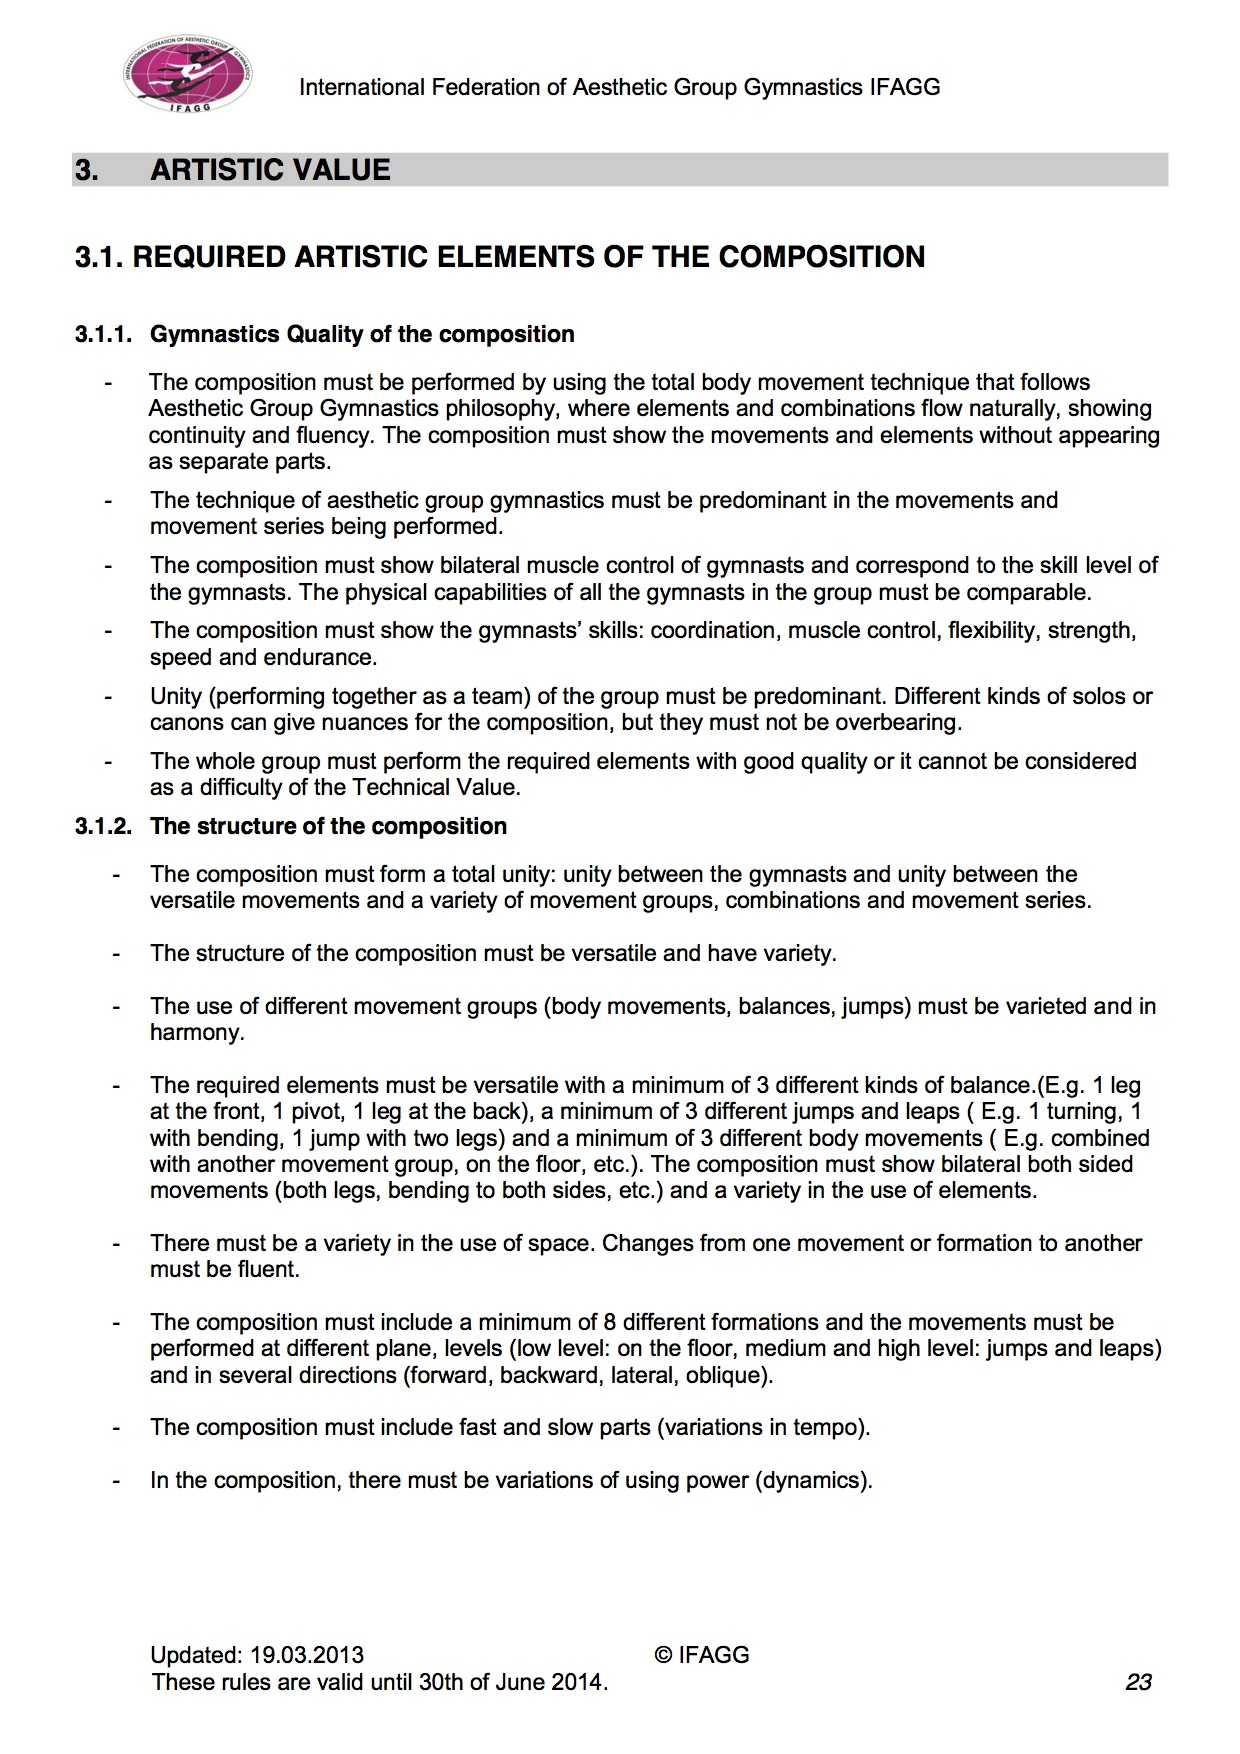 IFAGG Competition rules23.jpg